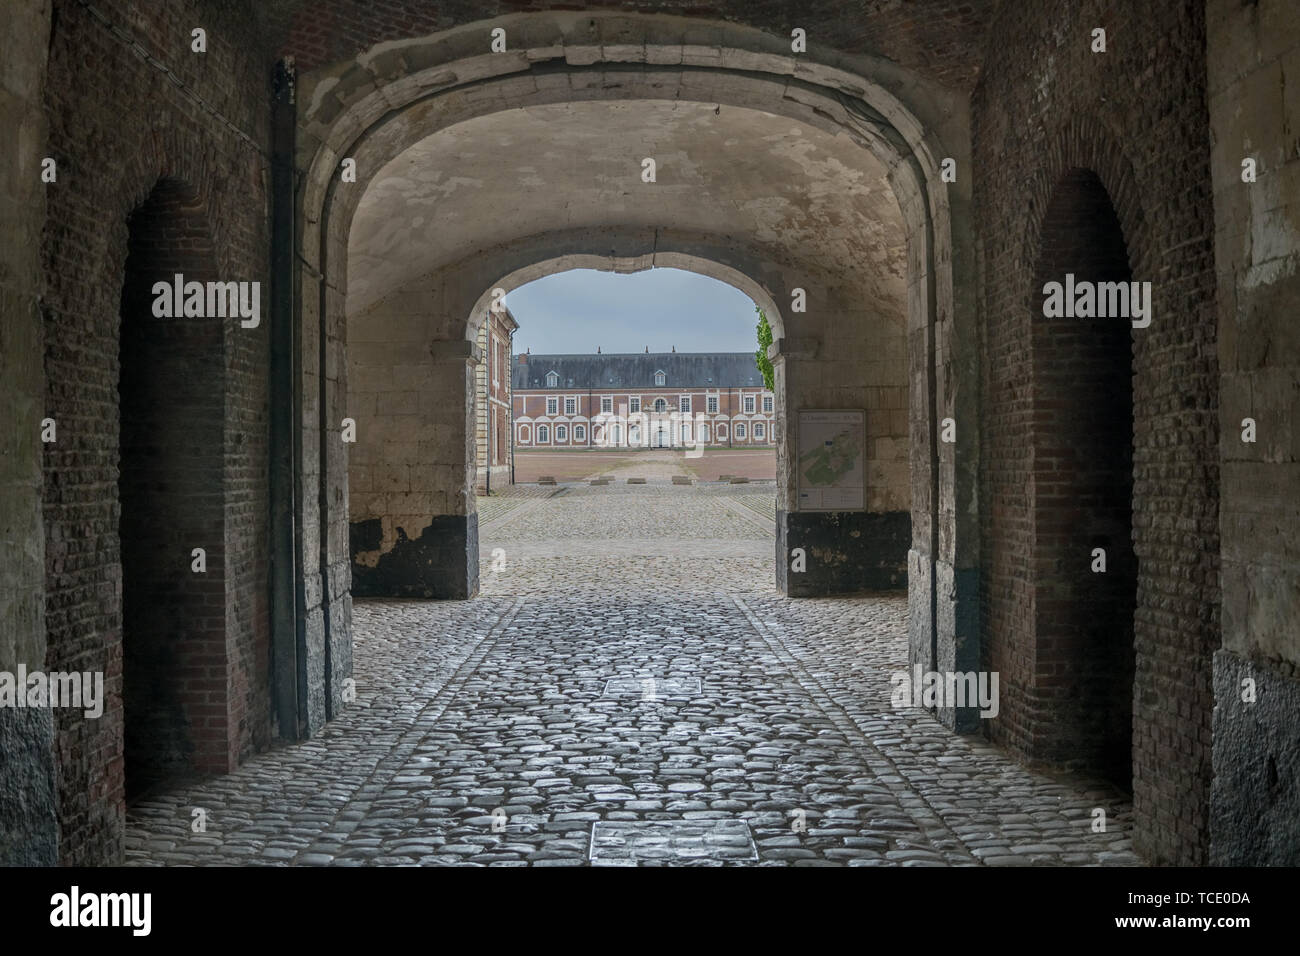 Arras, France - May 2, 2019 - The citadel, part of the 'Fortifications of Vauban' group - UNESCO World Heritage Site of France. - Stock Image